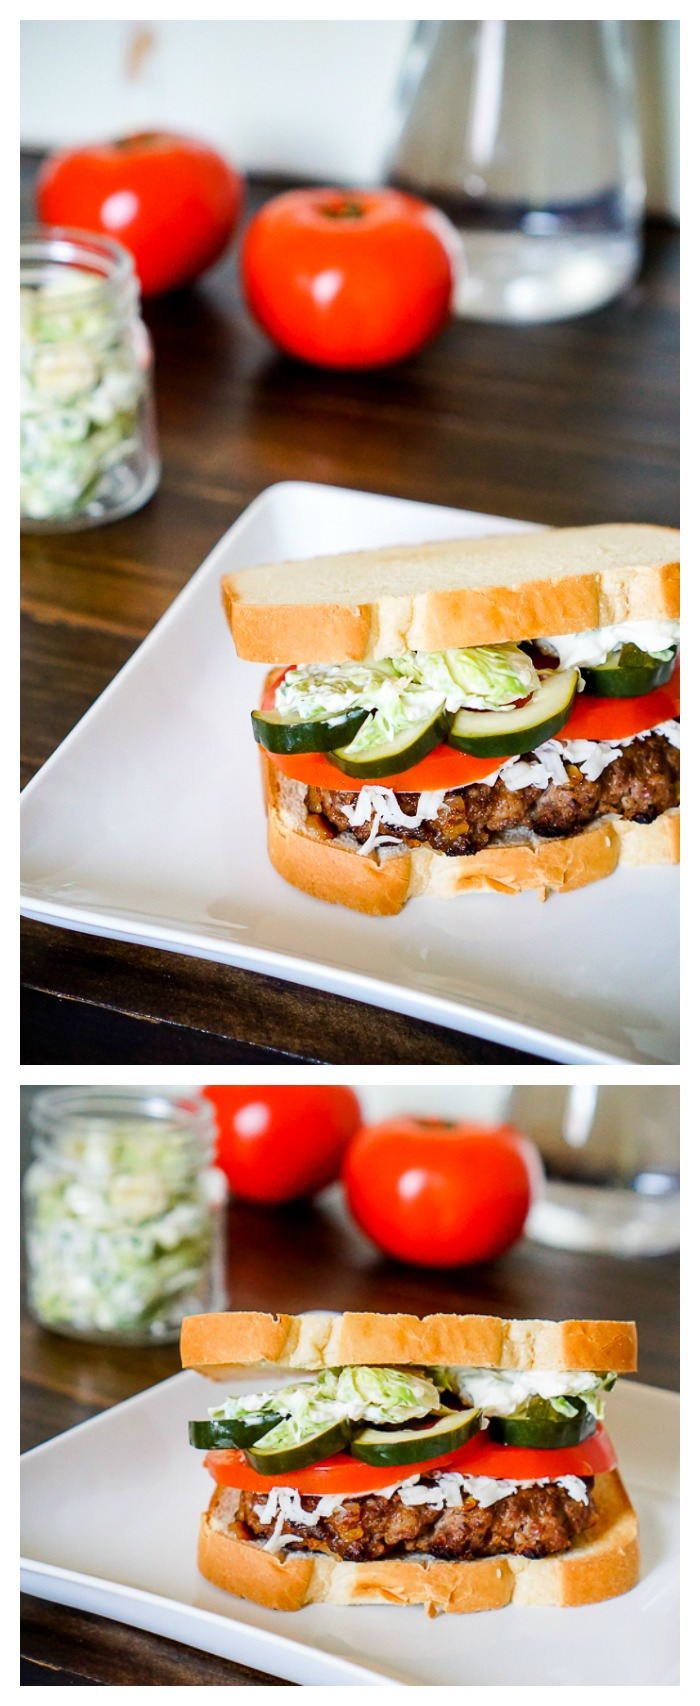 Two amazing sausage recipes - Veggie Sausage Dip and Sausage Smashed Burger Recipe! | The Love Nerds #ad #JDFAMILYTABLE